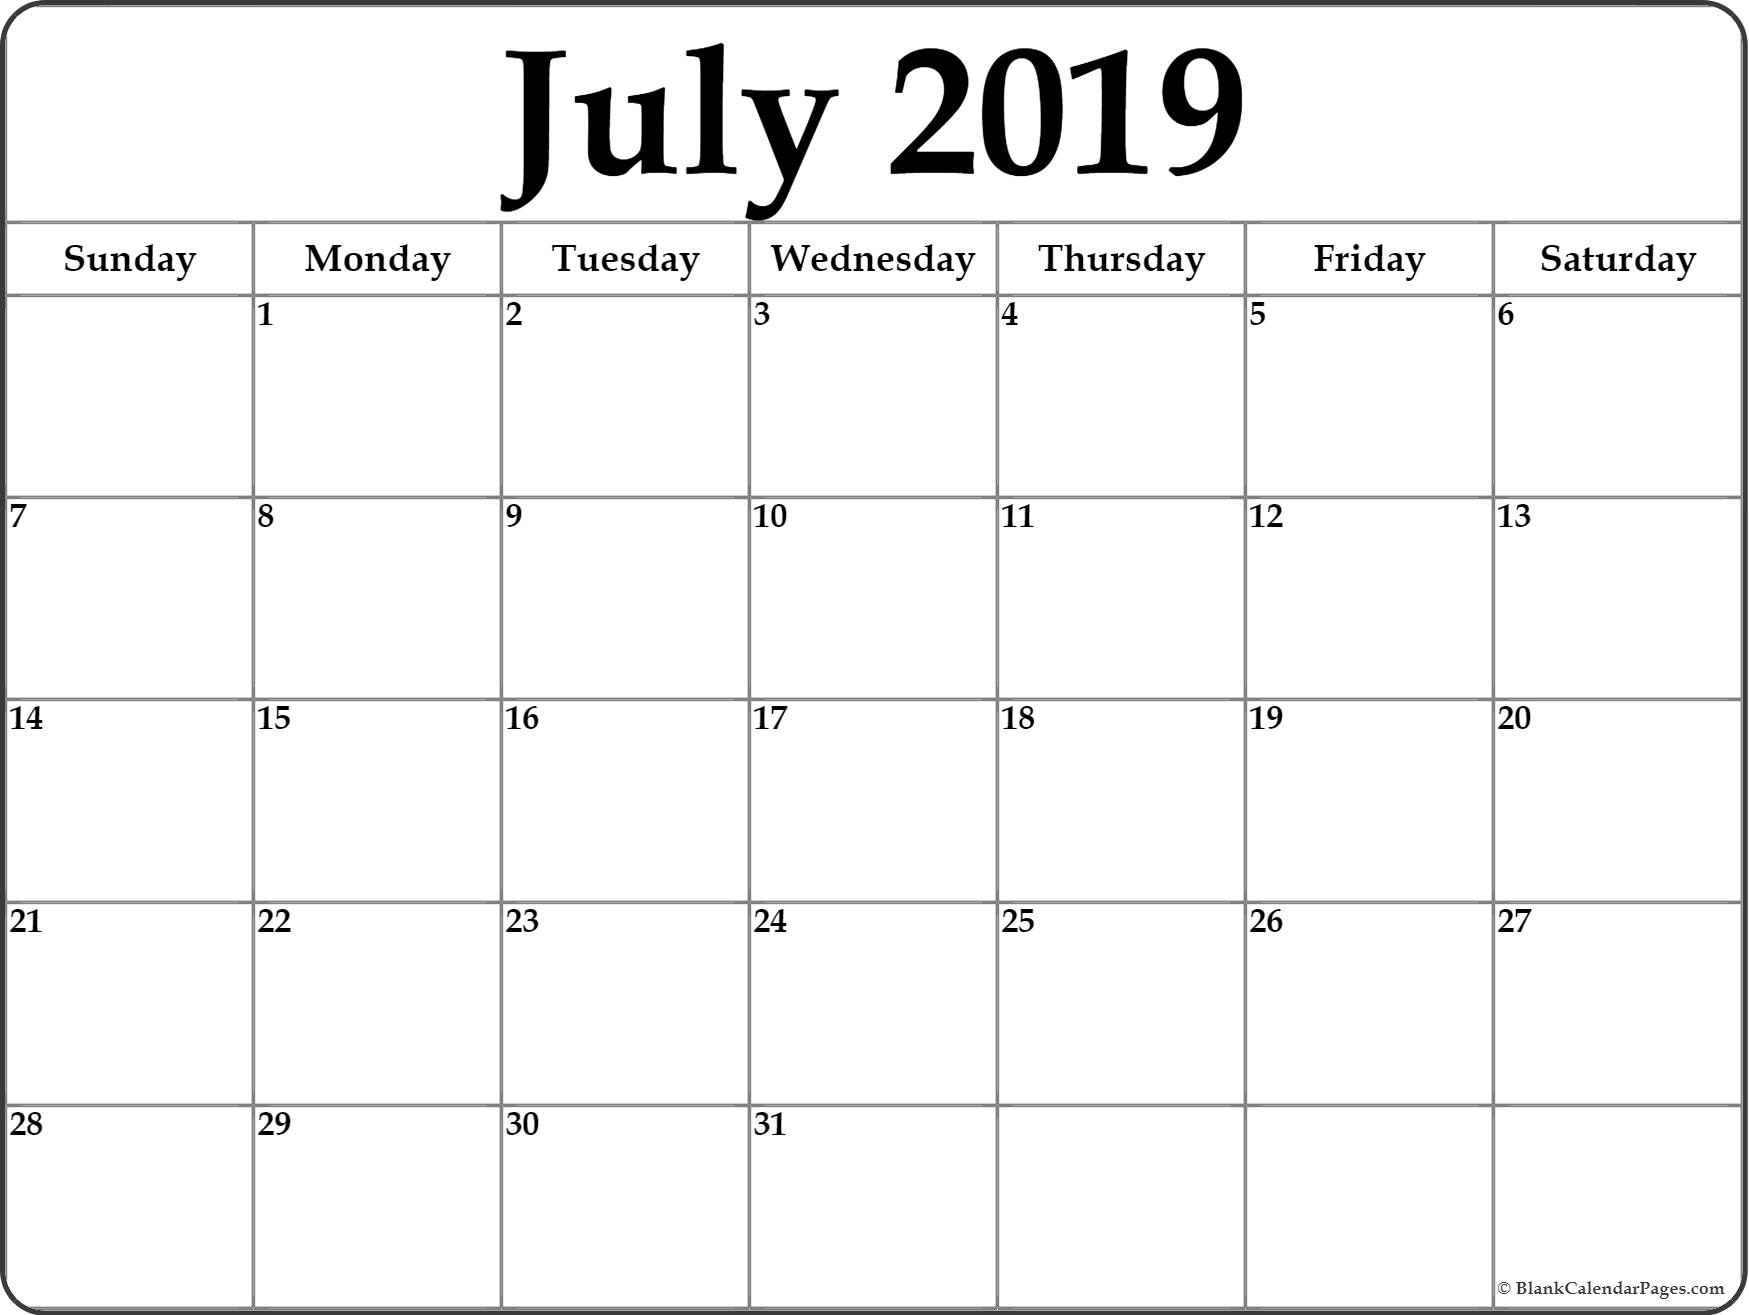 July 2019 Calendar | Free Printable Monthly Calendars pertaining to Cute Blank Monthly Calendar Template